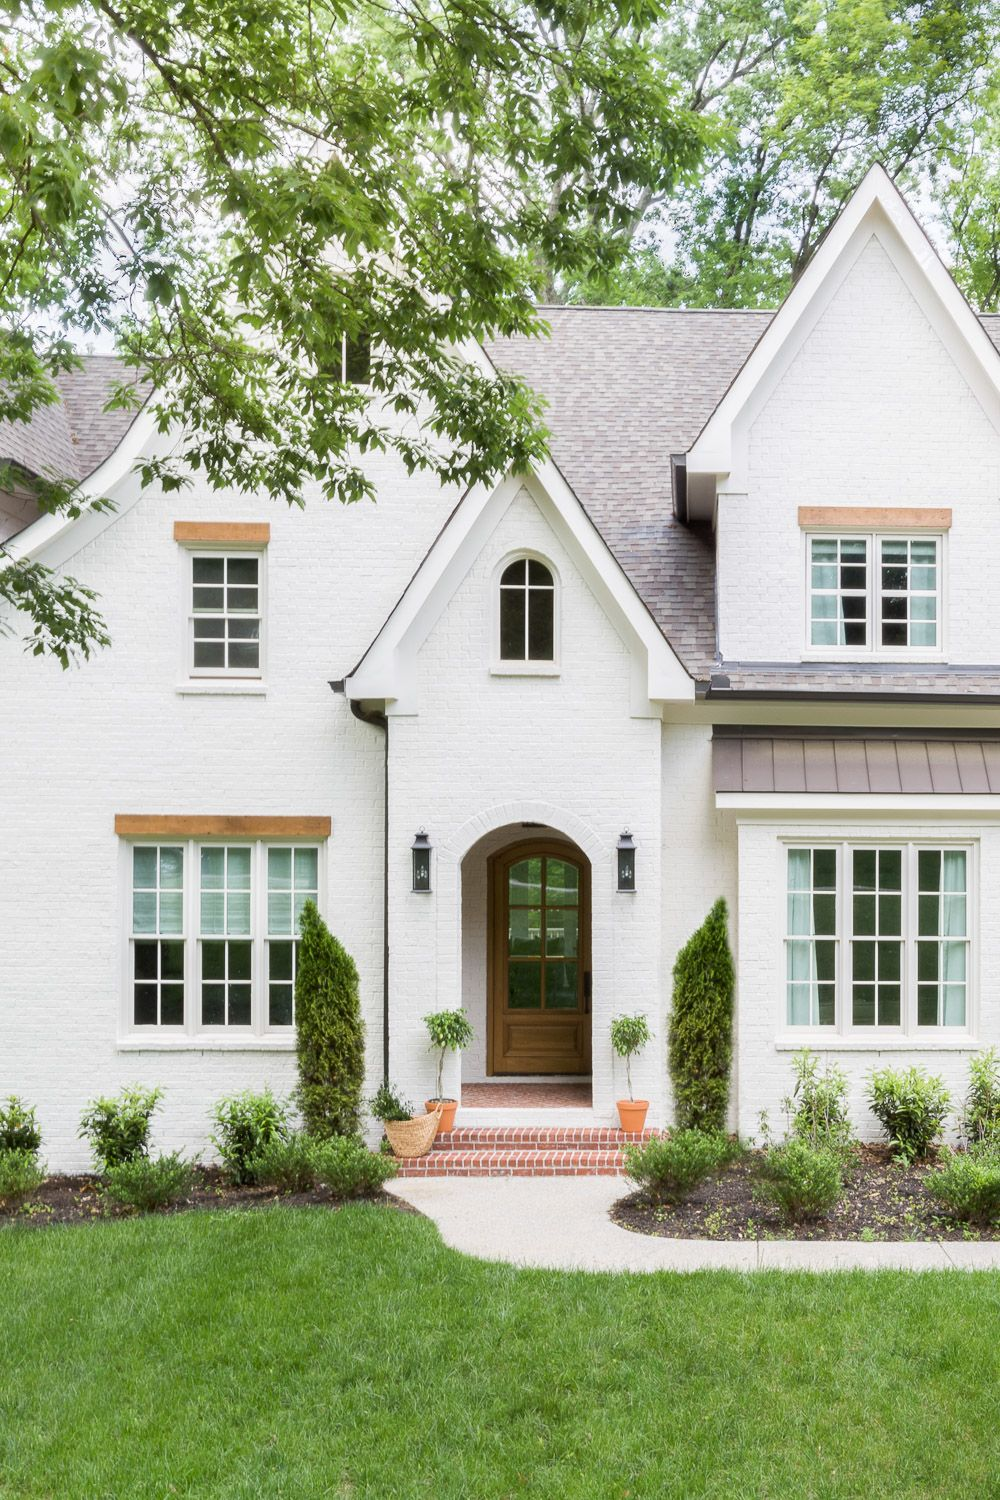 Home Reveal Houses Dream House Exterior House Styles